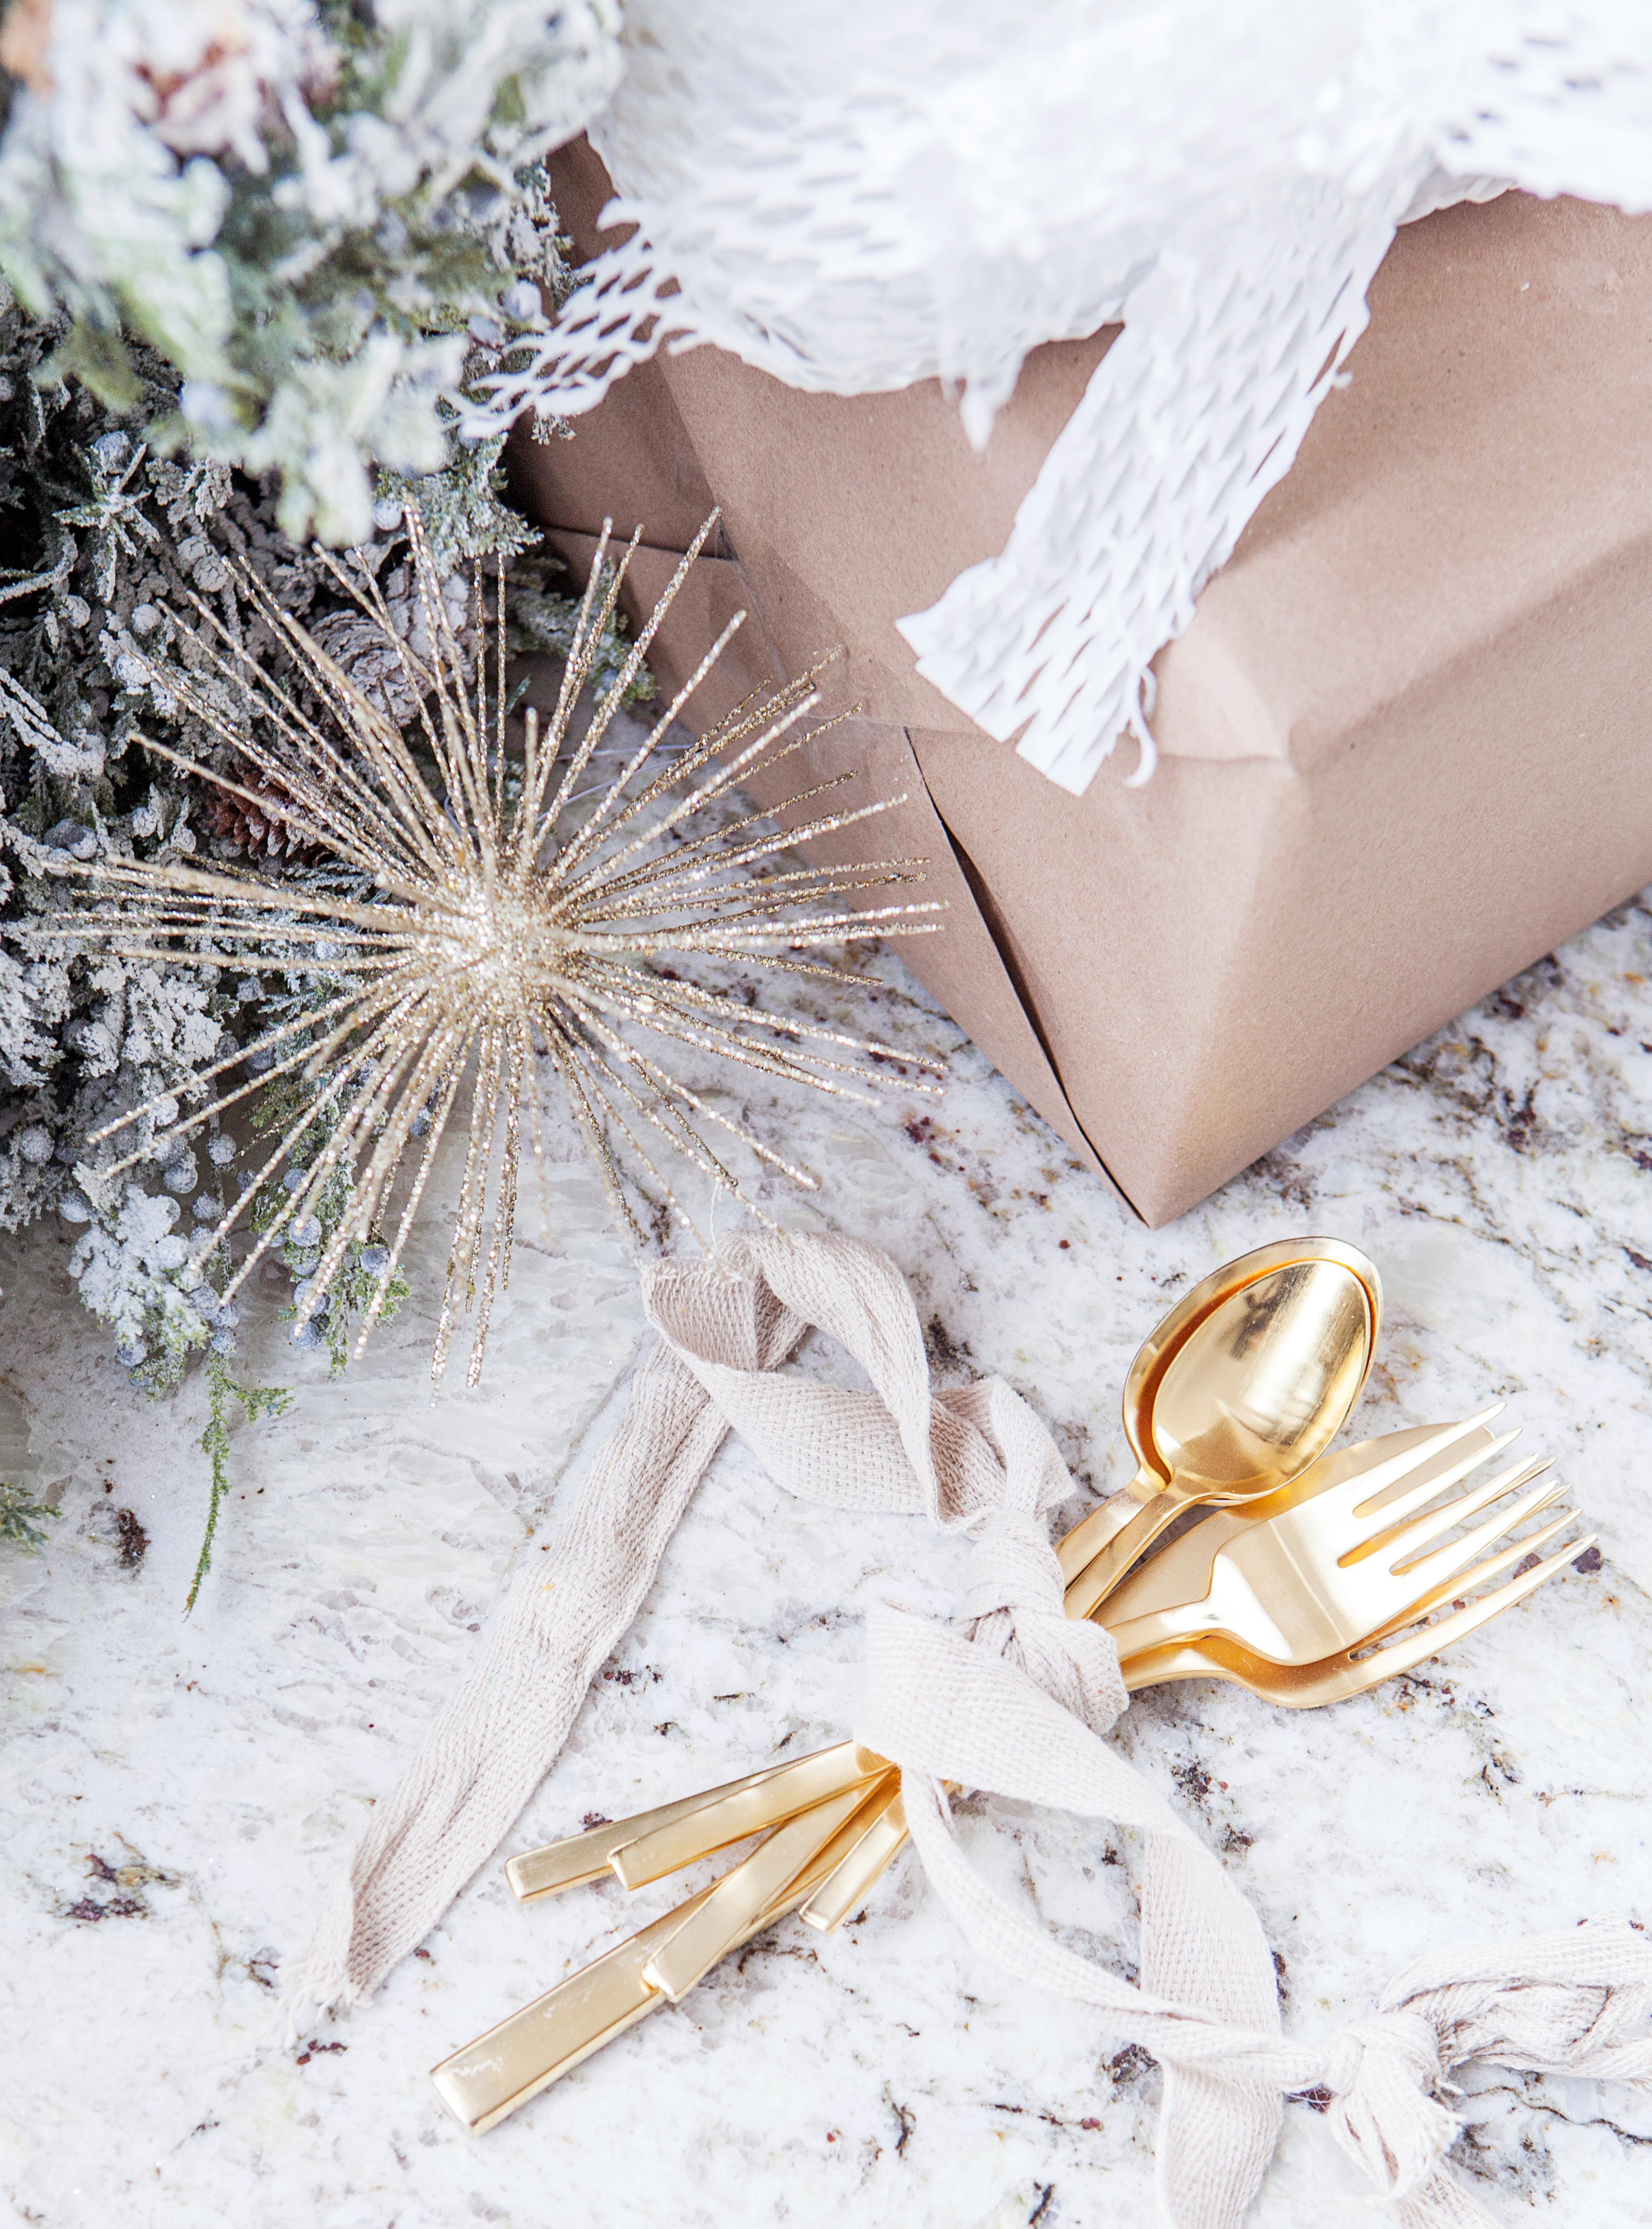 Who doesn't need a bit of shimmer on their holiday table? West Elm has got the most beautiful gold flatware that is the perfect accent to any table all year long. (Image: Ashley Hafstead)